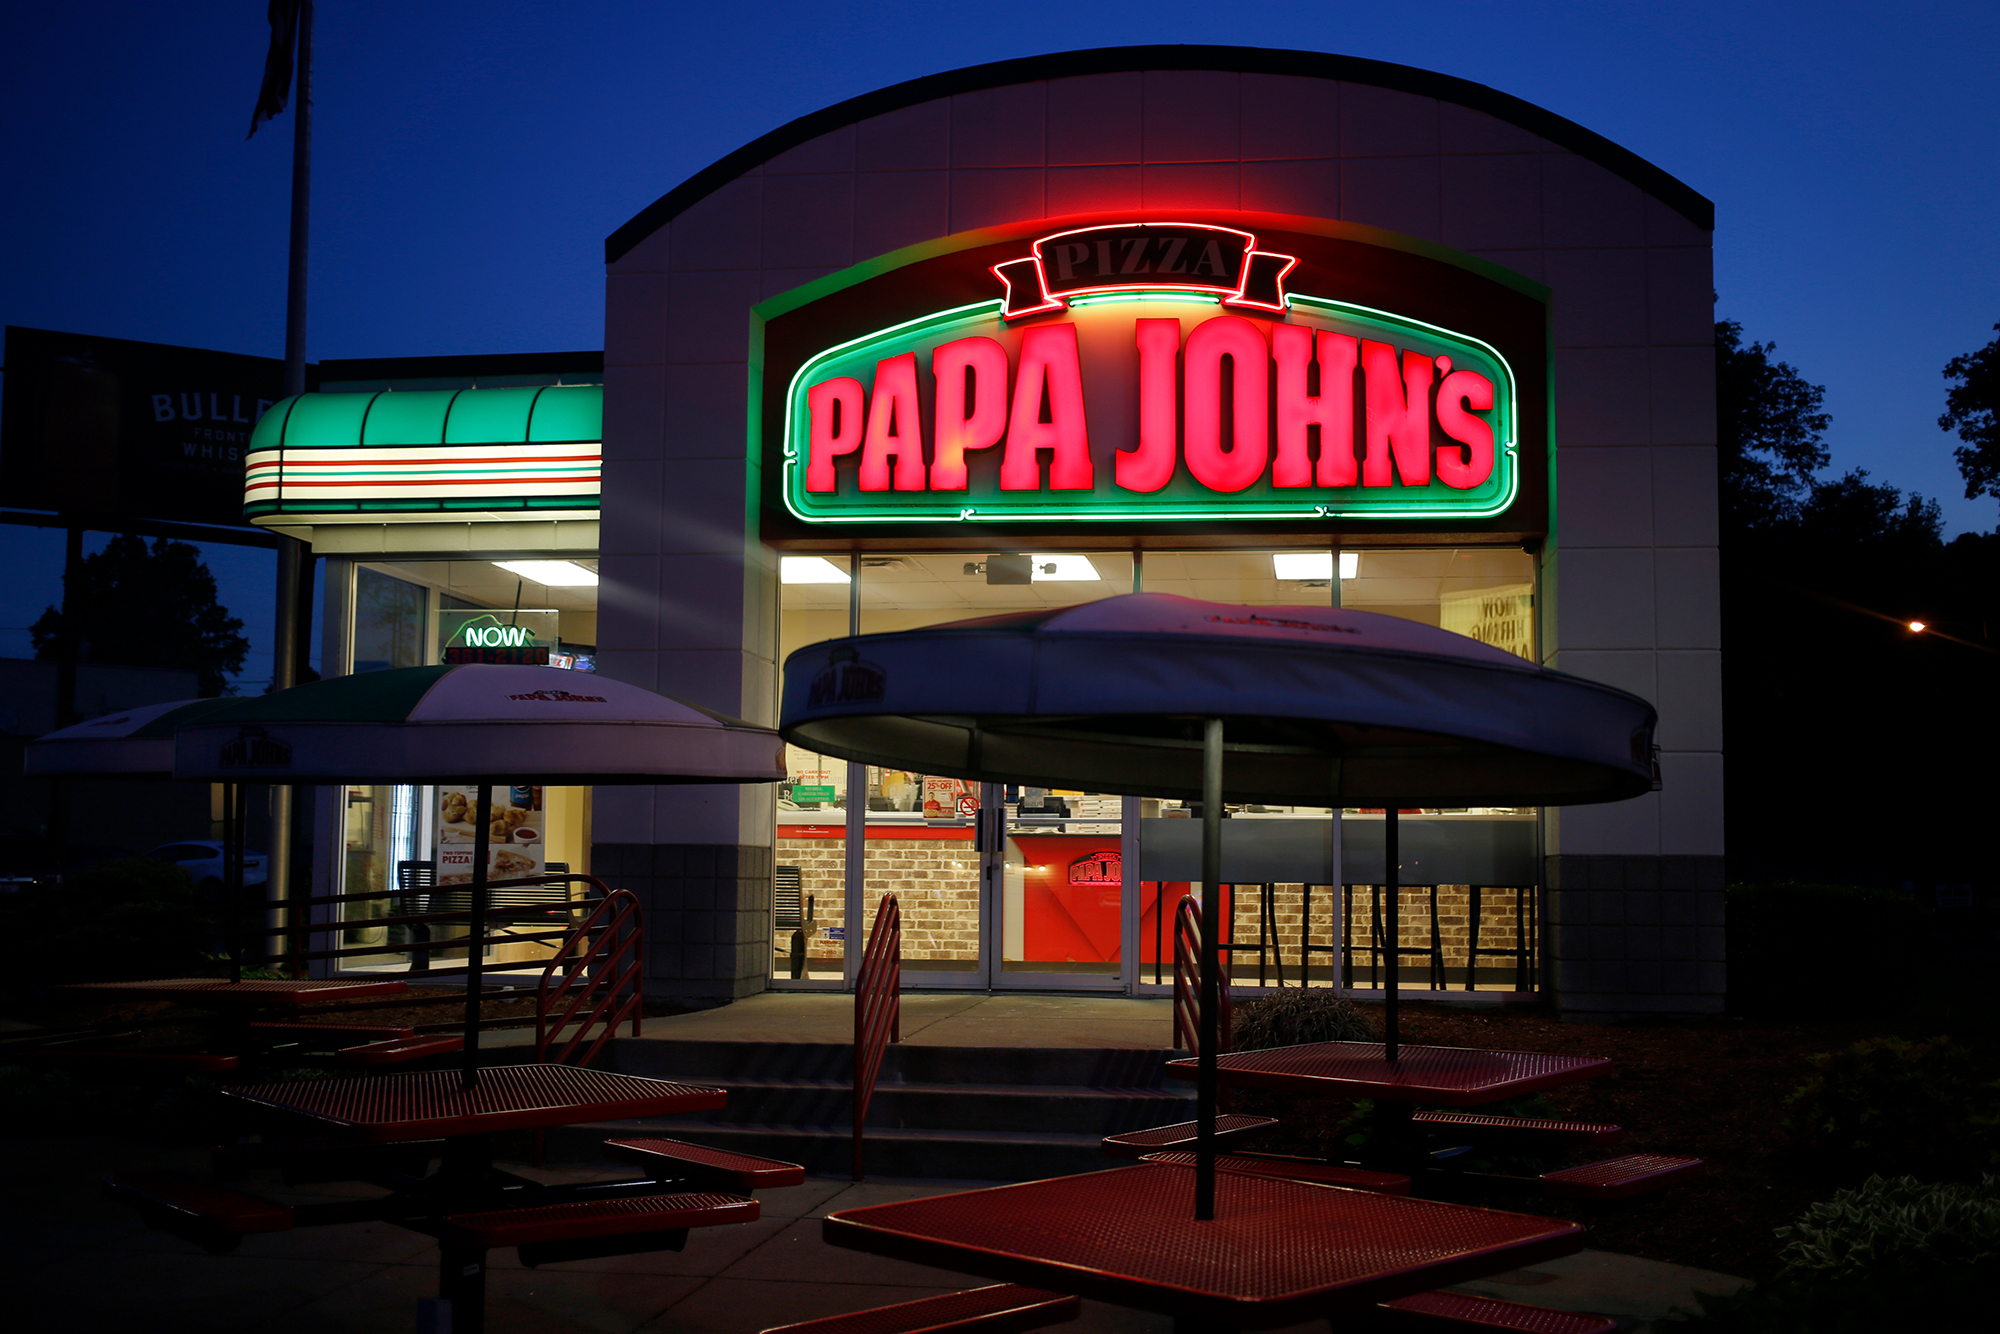 After 36 years, Papa John's moves some operations out of its hometown